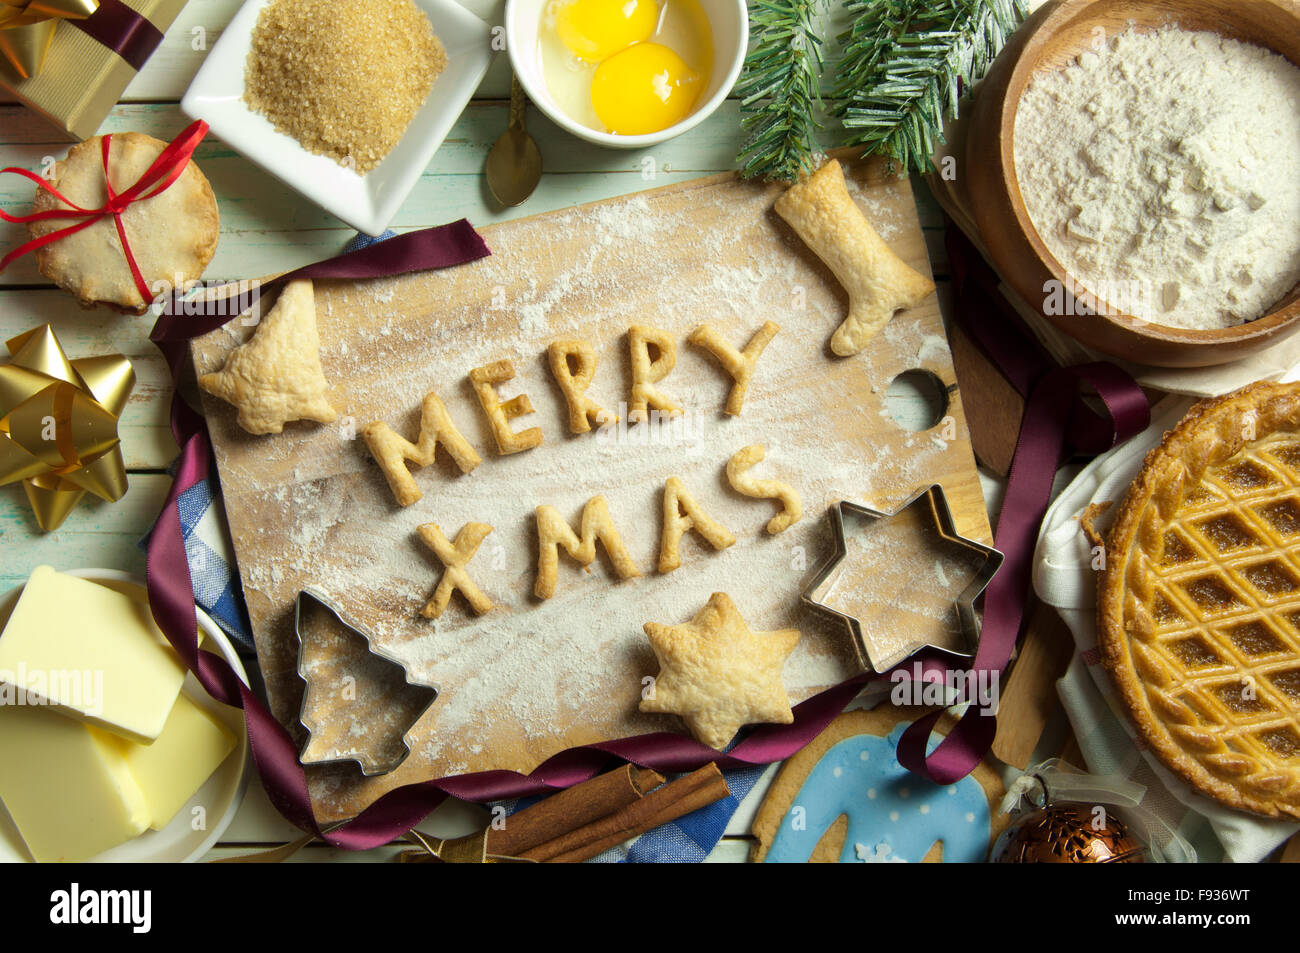 Christmas Baking Background With Merry Xmas Made From Cookies On A